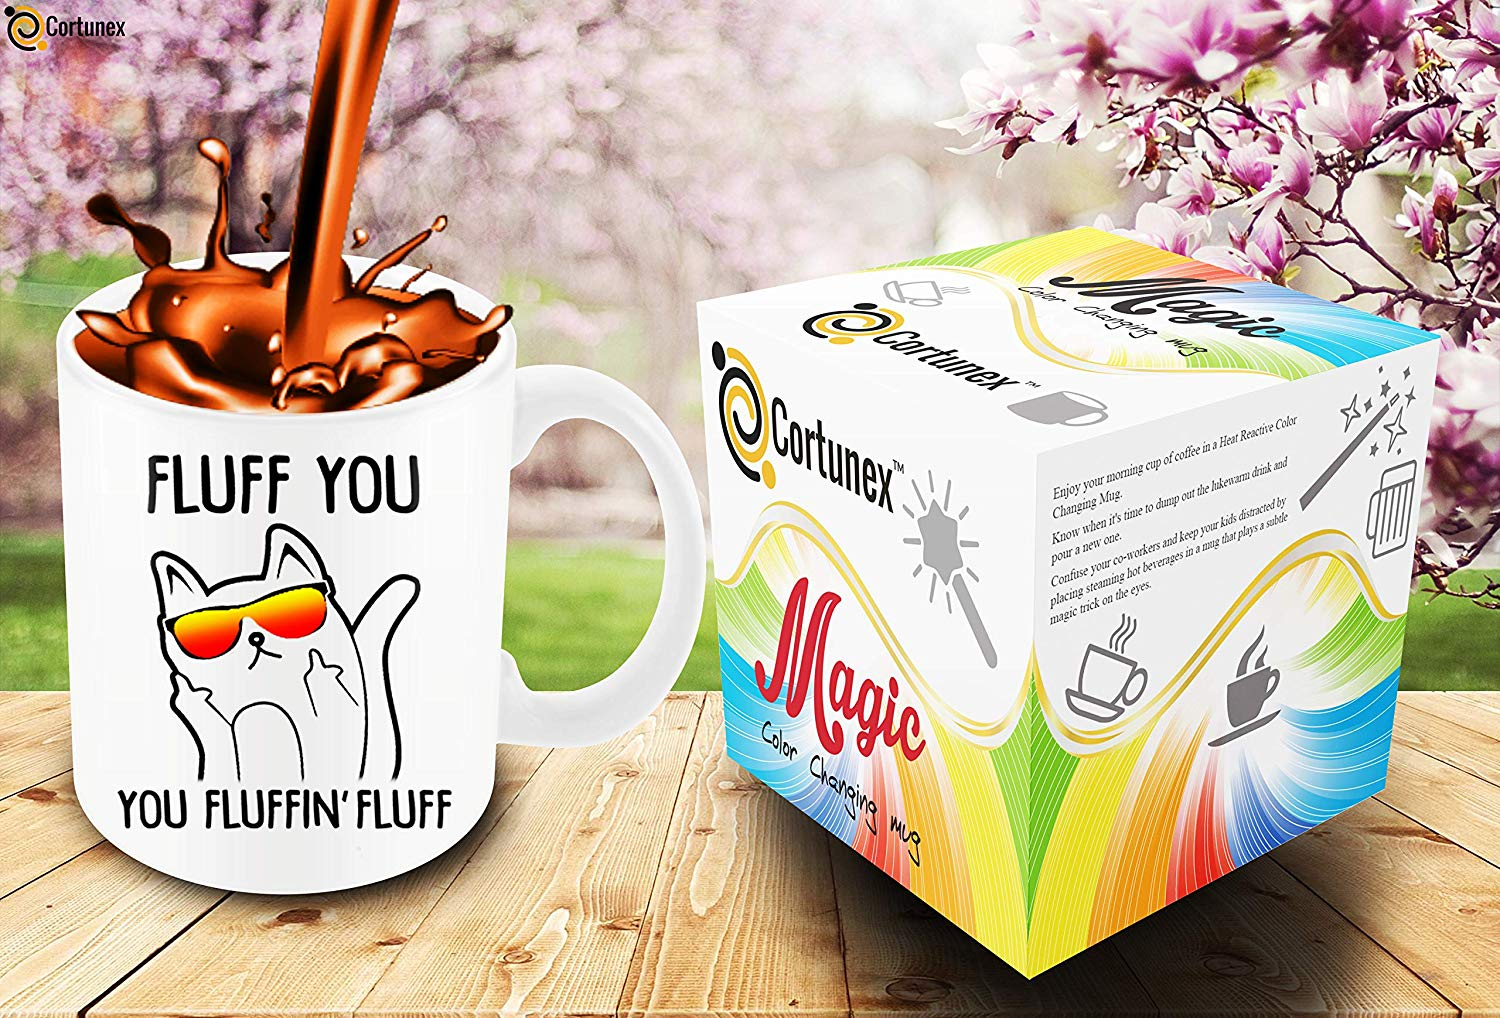 Heat Sensitive Color Changing Coffee Mug Funny Coffee Cup Fluff You You Fluffin Fluff Cat Design Funny Gift Idea B079FZ78QP 7